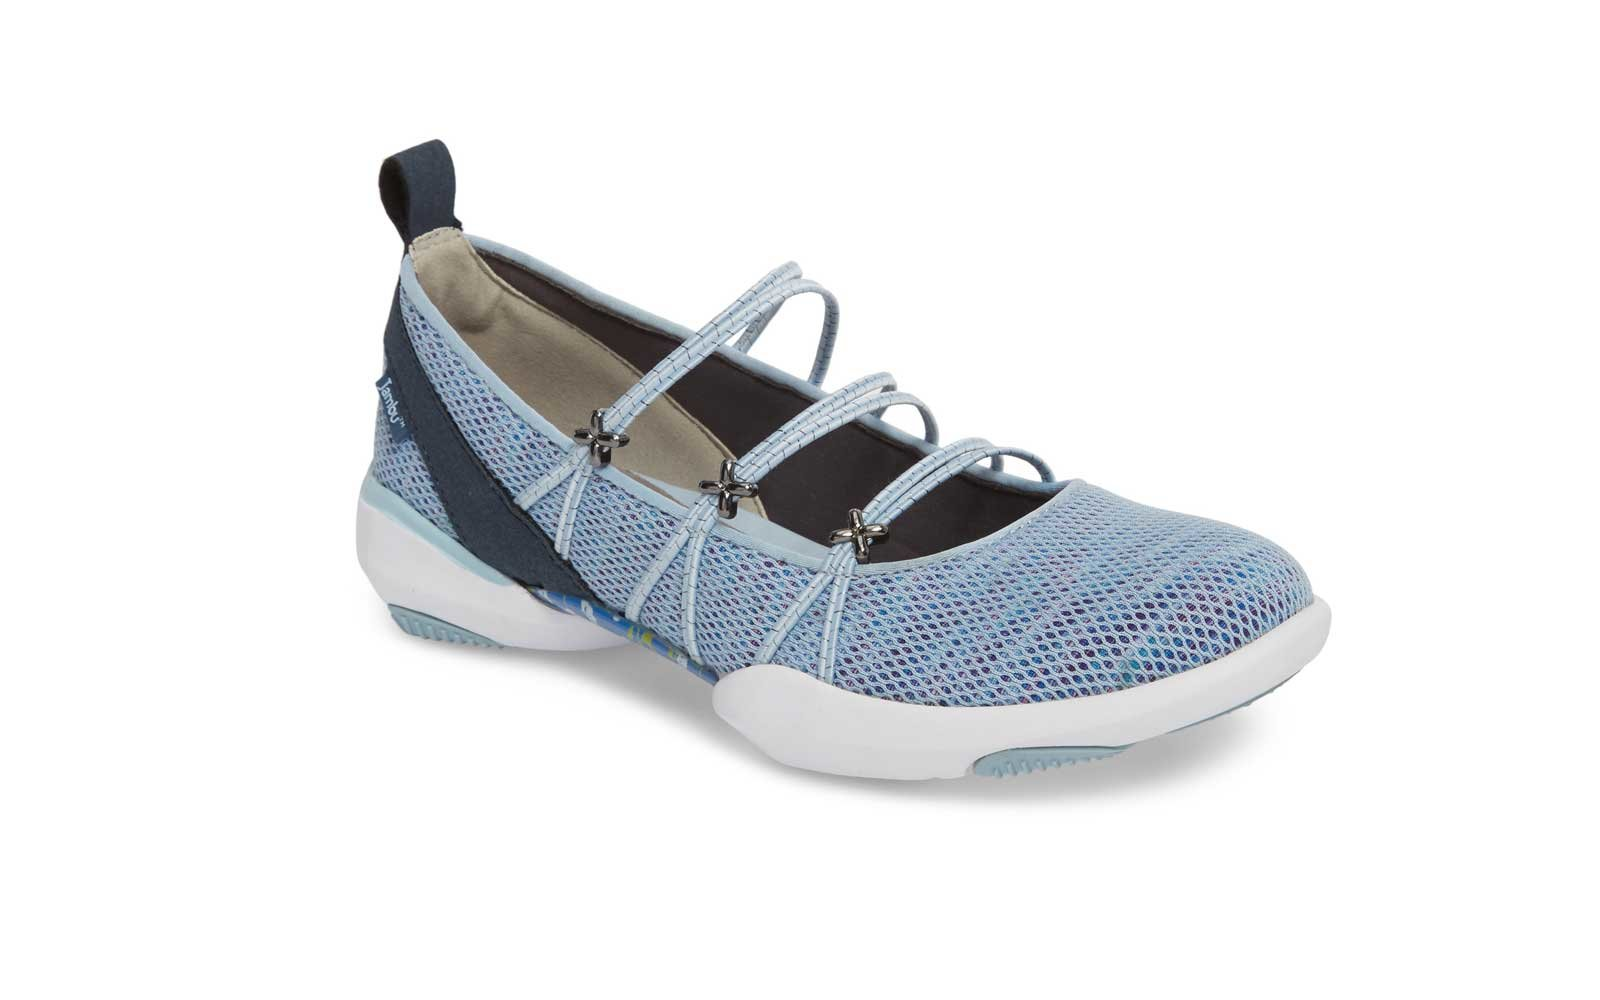 Jambu 'Cheyenne' Water-ready Slip-on